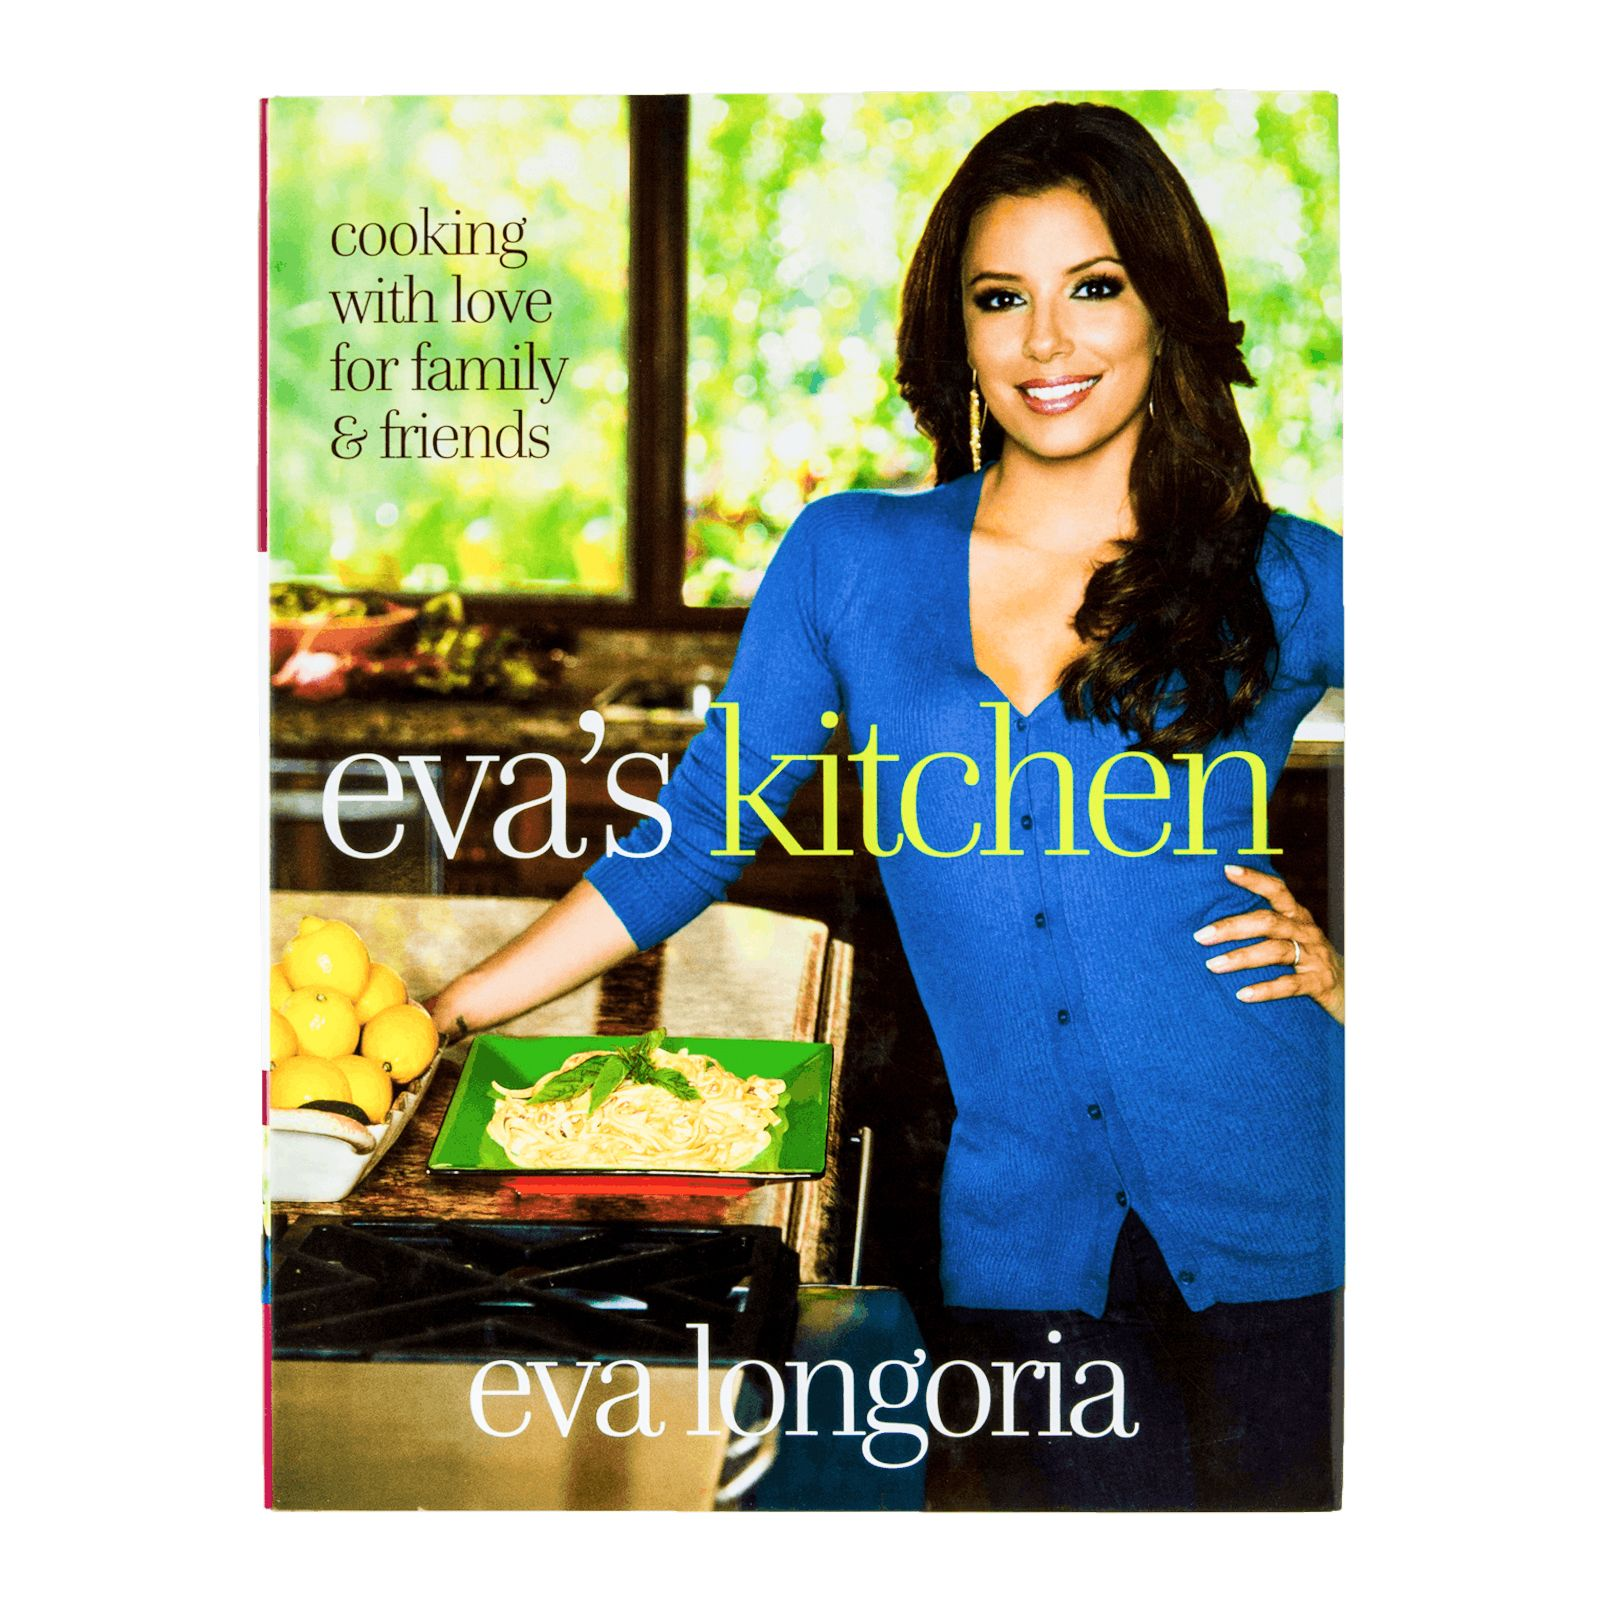 Evas Kitchen Cooking with Love for Family and Friends  Texas Capitol Gift Shop